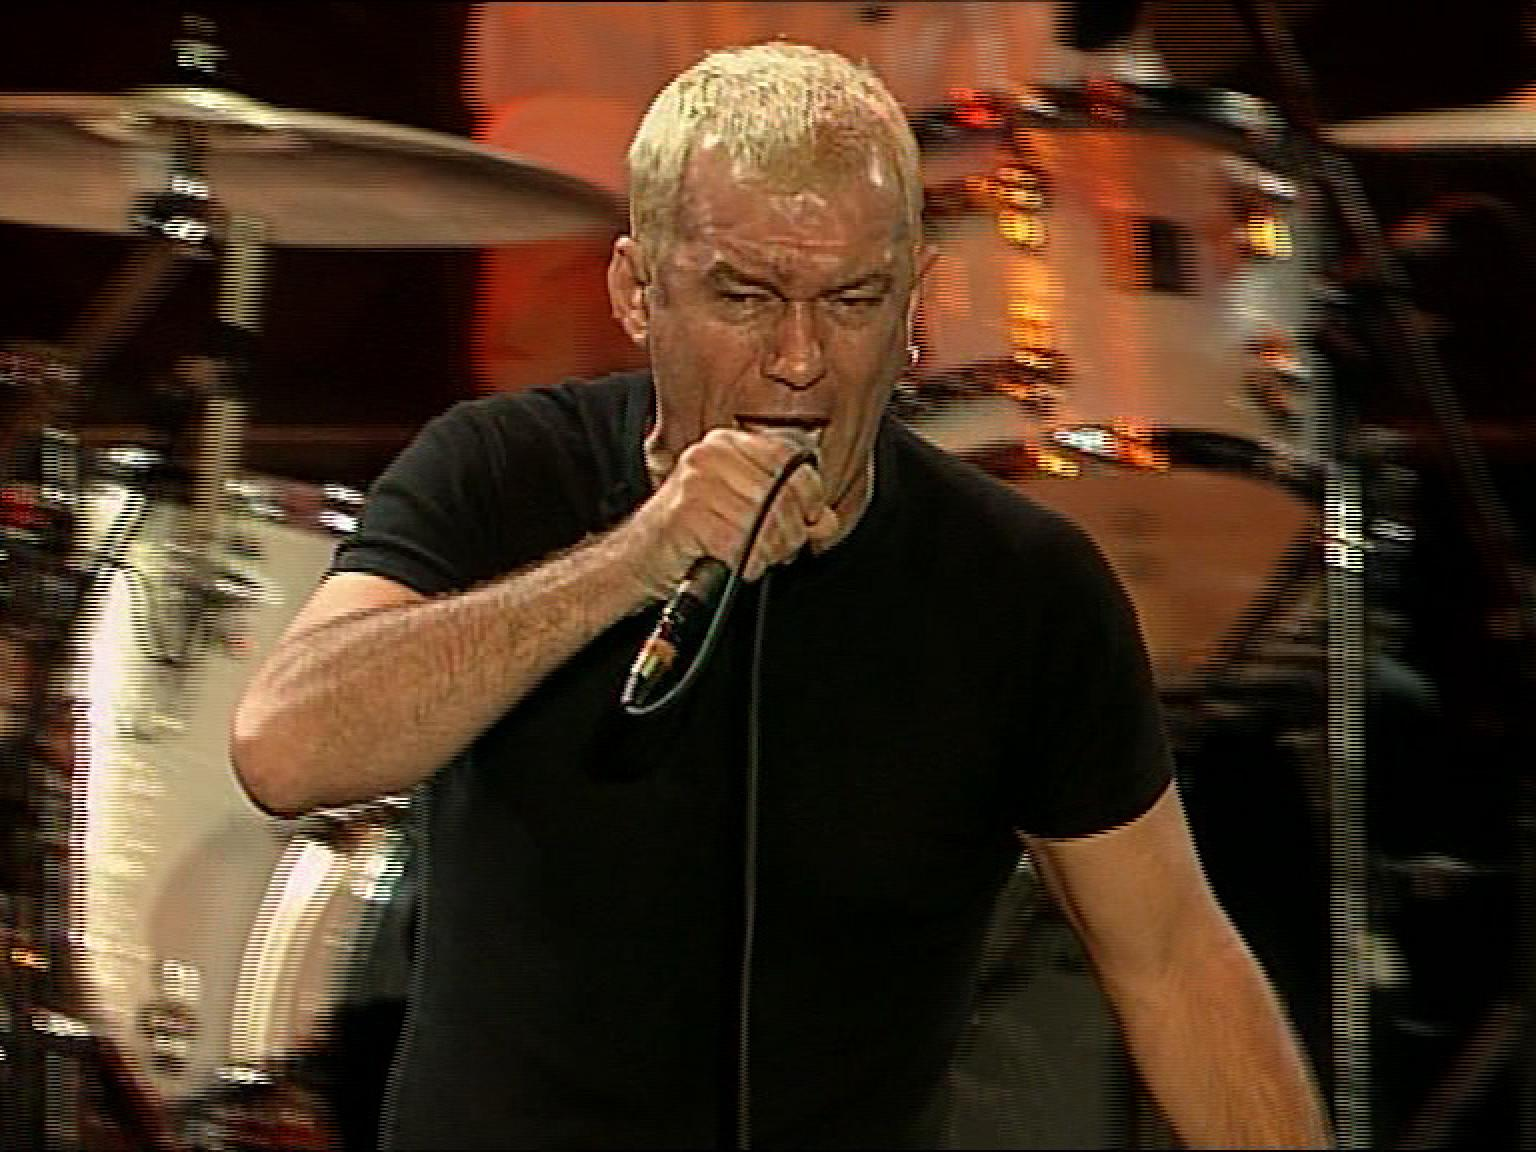 Jimmy Barnes wearing black t-shirt on stage, singing into a microphone. He is pictured from the waist up with a drum kit in the background.